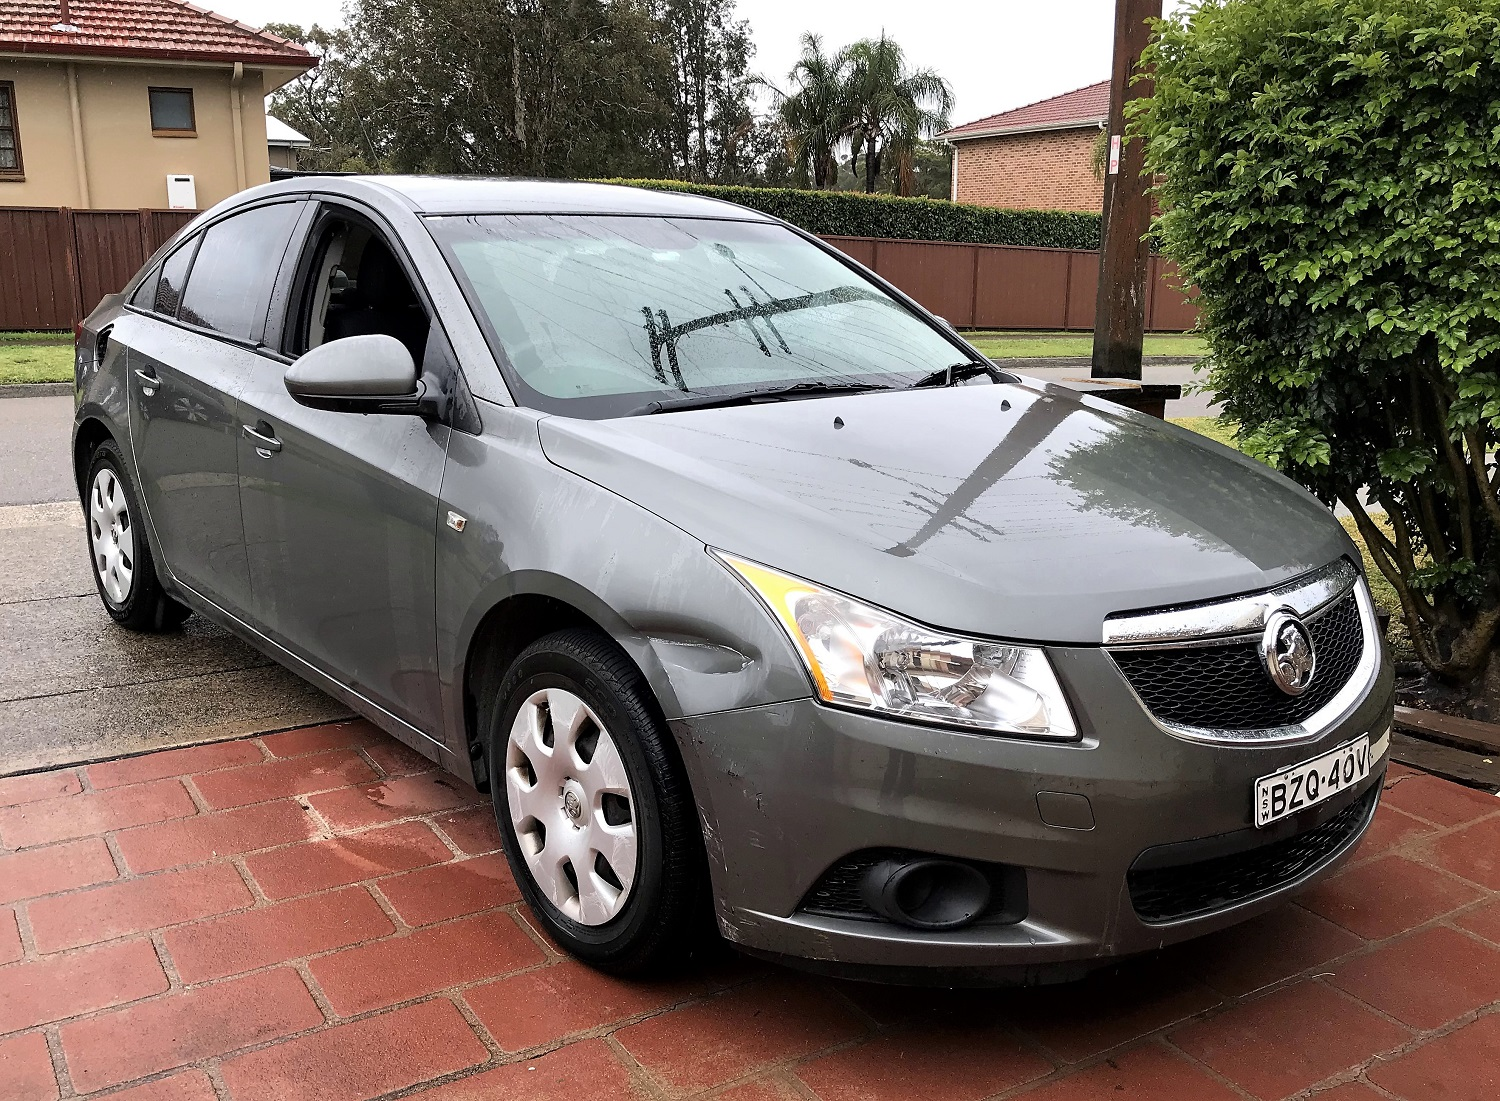 Picture of Giang's 2011 Holden Cruze